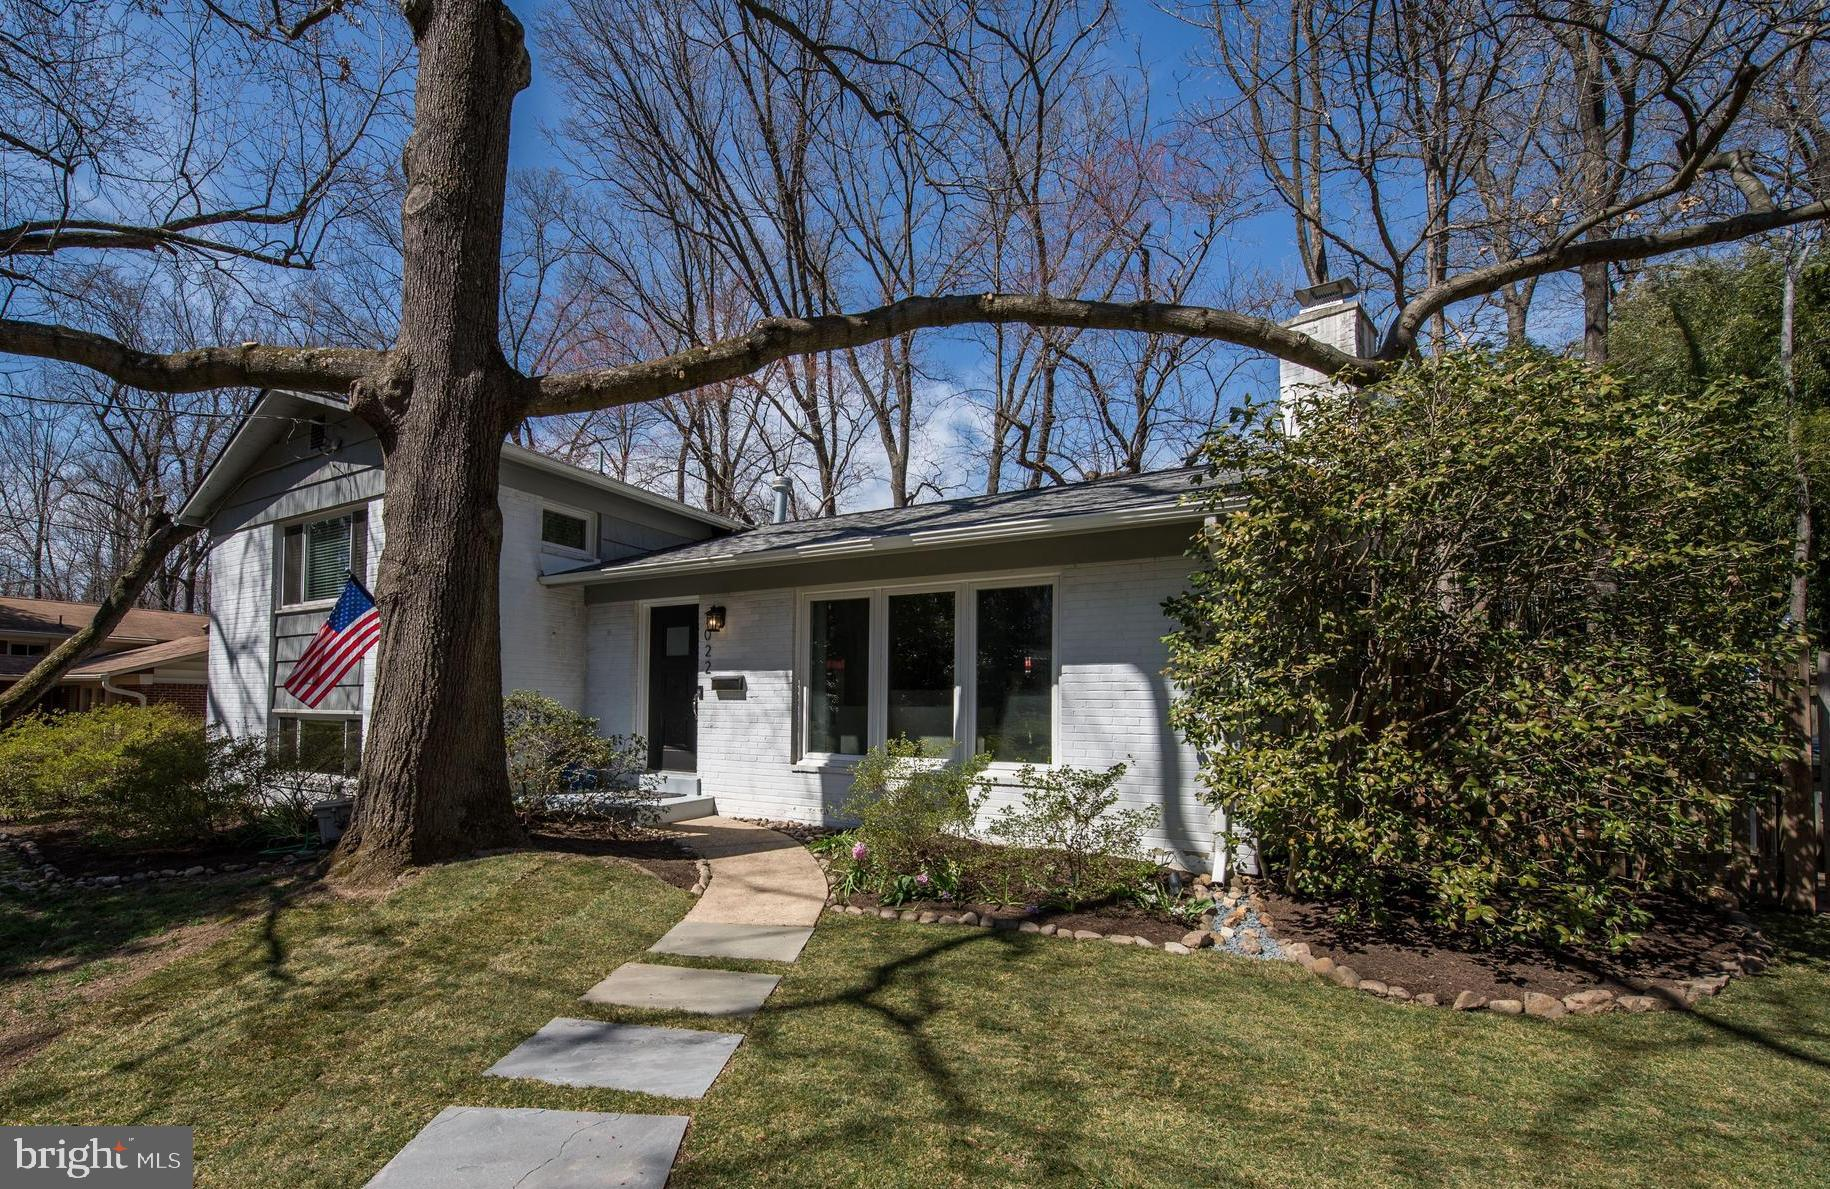 Offers Due Monday 4/1/19 at 4pm. Renovated 4 bedroom, 3 bath home on a quiet cul-de-sac in FallsChurch! Enjoy a sunny living room with hardwood floors anda wood burning fireplace with brick surround. A formal diningroom is followed by an updated gourmet kitchen featuring granite counters,recessed lighting and stainless steel appliances, all opening to a backpatio that~s perfect for entertaining. Upstairs find a master suitefollowed by two more bedrooms down the hall, sharing a hall bath.Downstairs find a large rec room with wood burning fireplace,fourth bedroom with separate side entrance, hall bath, laundryroom and loads of storage. All this along with a gorgeous fullyfenced back yard and just steps to Holmes Run Stream Valley Park!